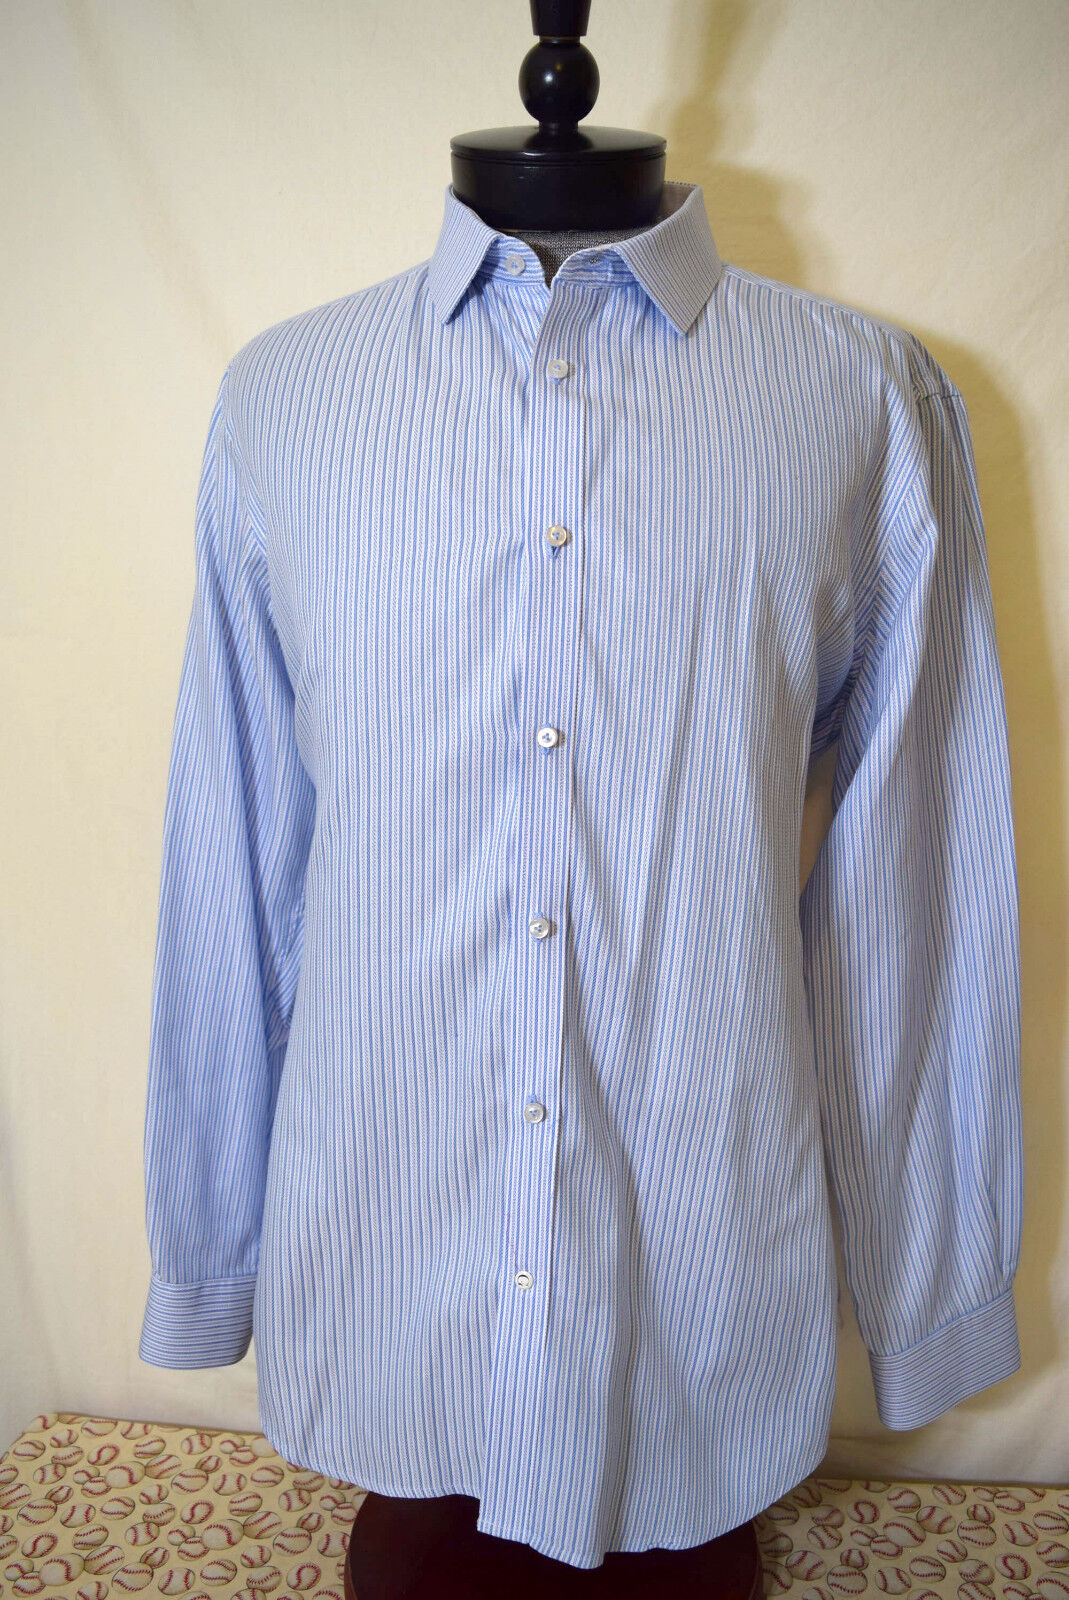 Robert Graham 42 X 16.5 Shirt Mens bluee White Striped